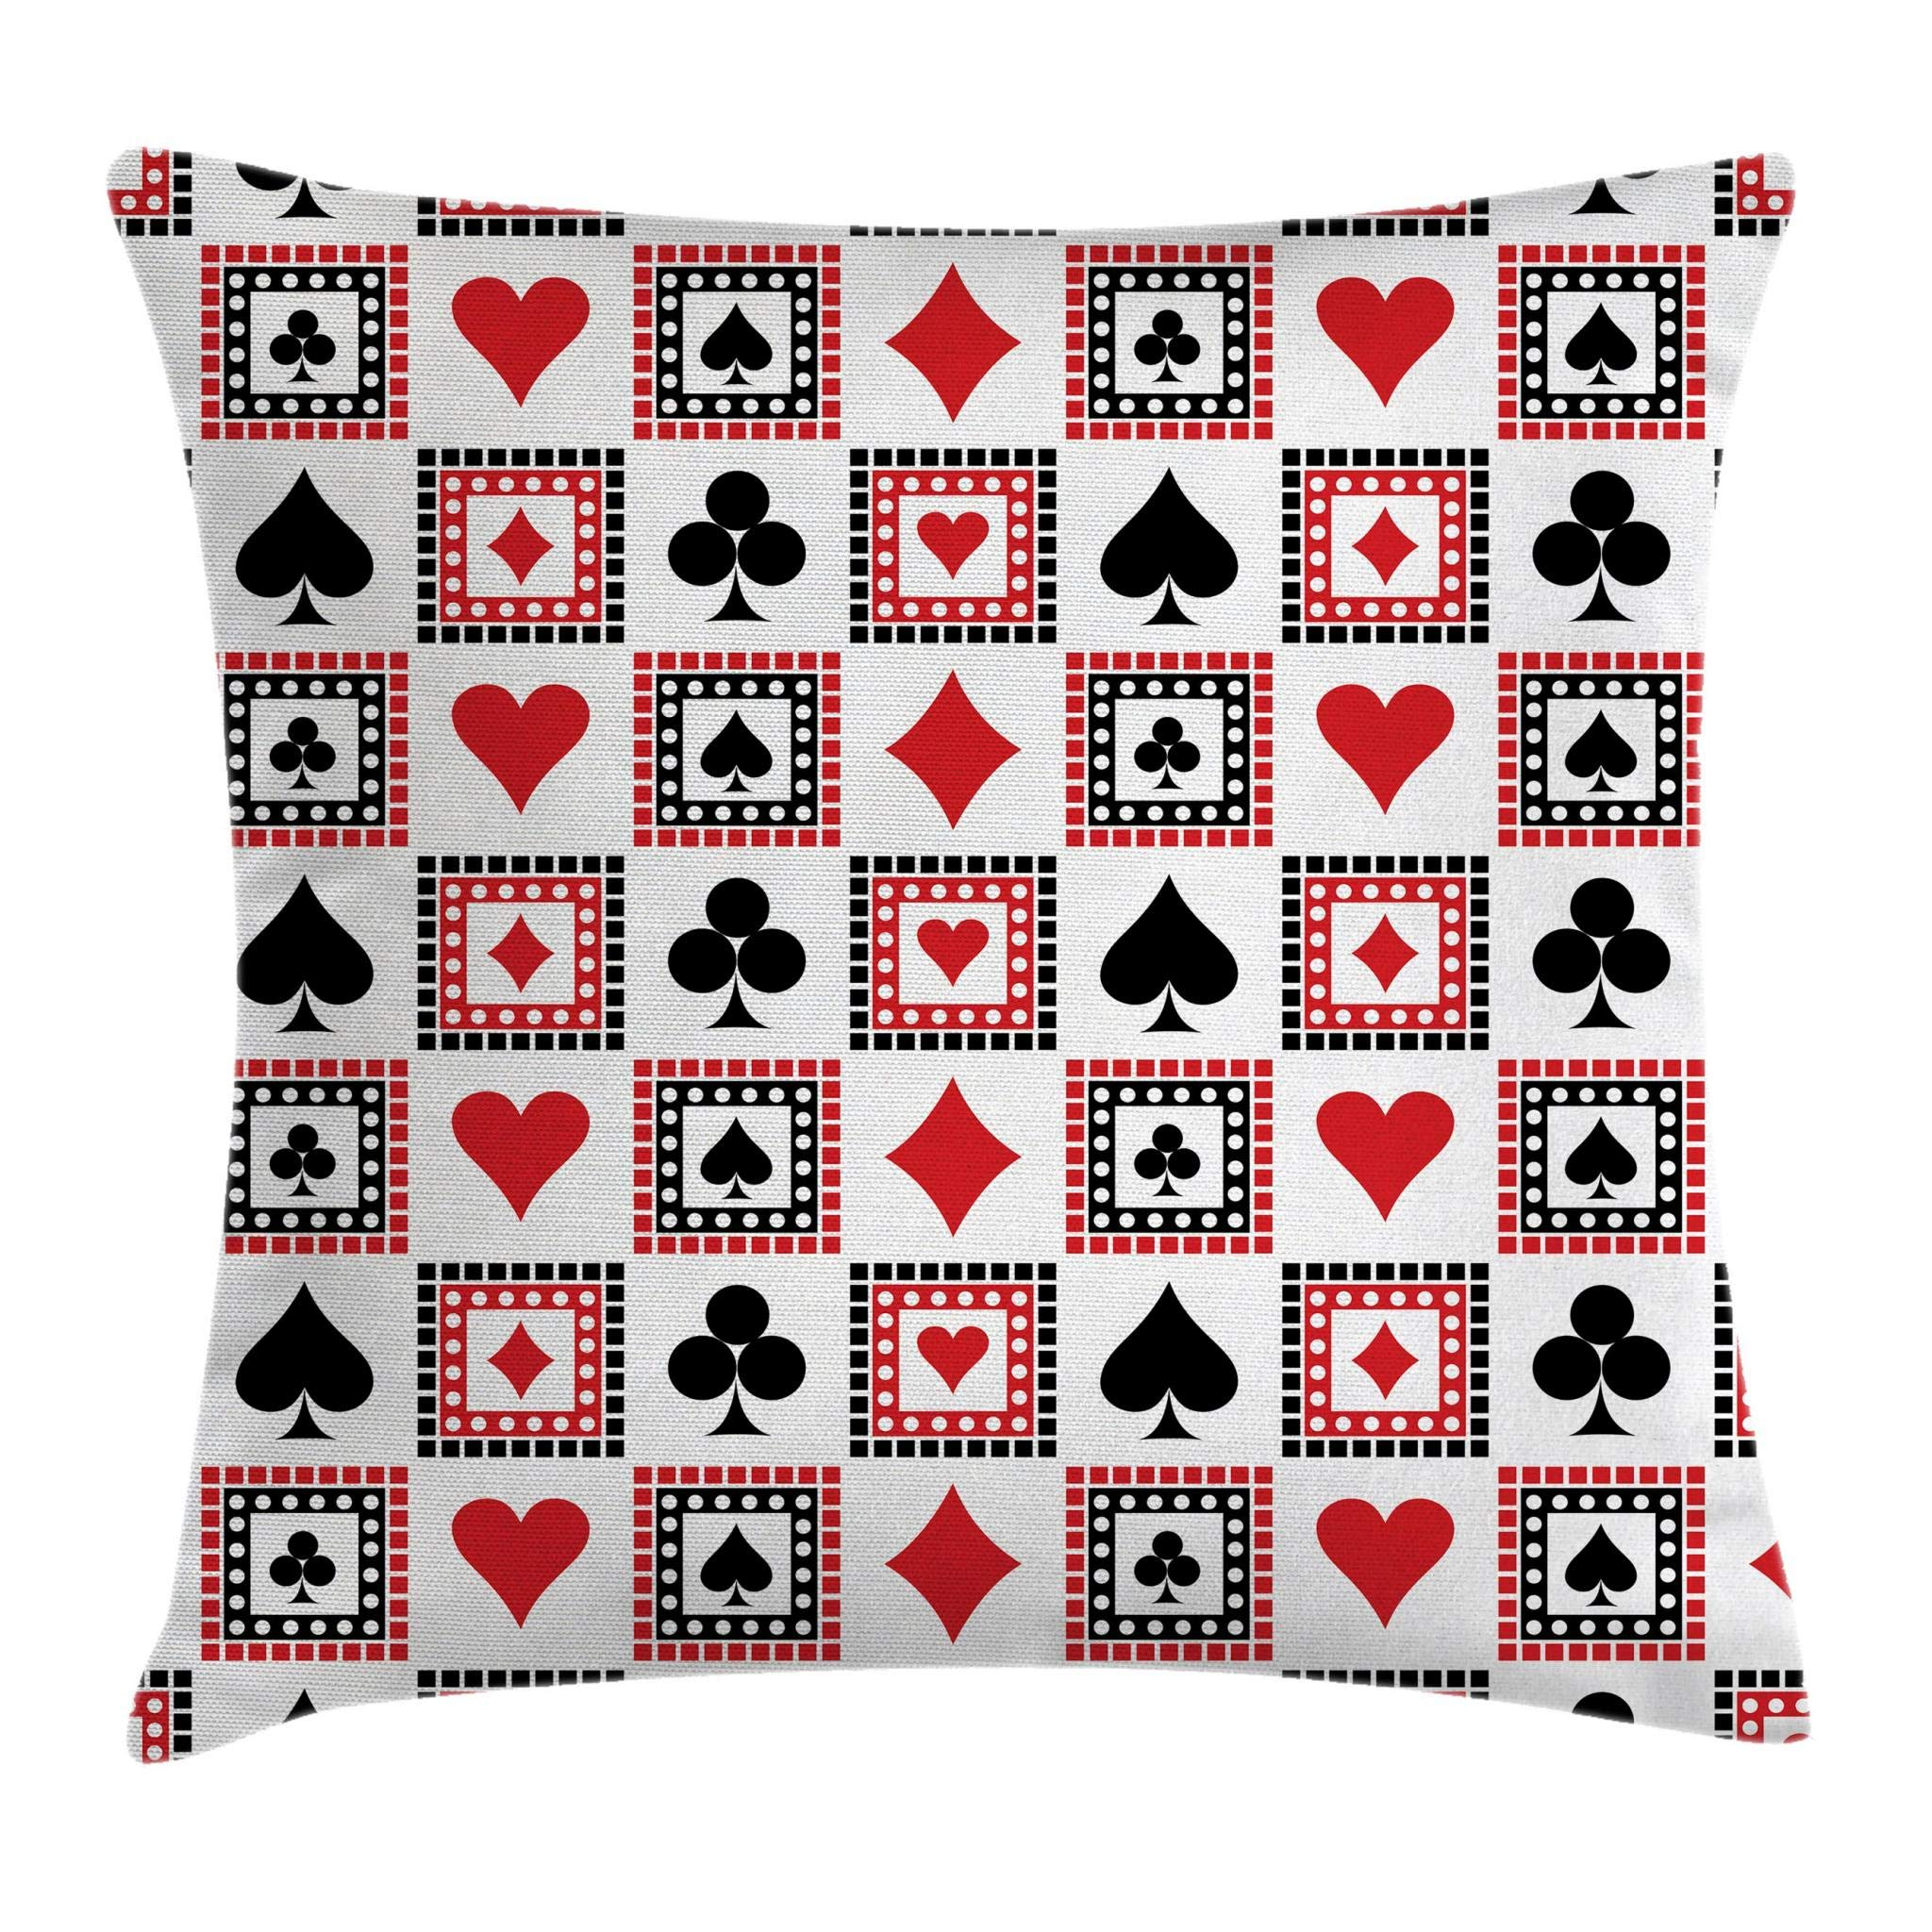 Ambesonne Casino Throw Pillow Cushion Cover, Playings Cards Clubs Hearts Symmetrical Geometric Repeating Ornamental, Decorative Square Accent Pillow Case, 20'' X 20'', Scarlet Black